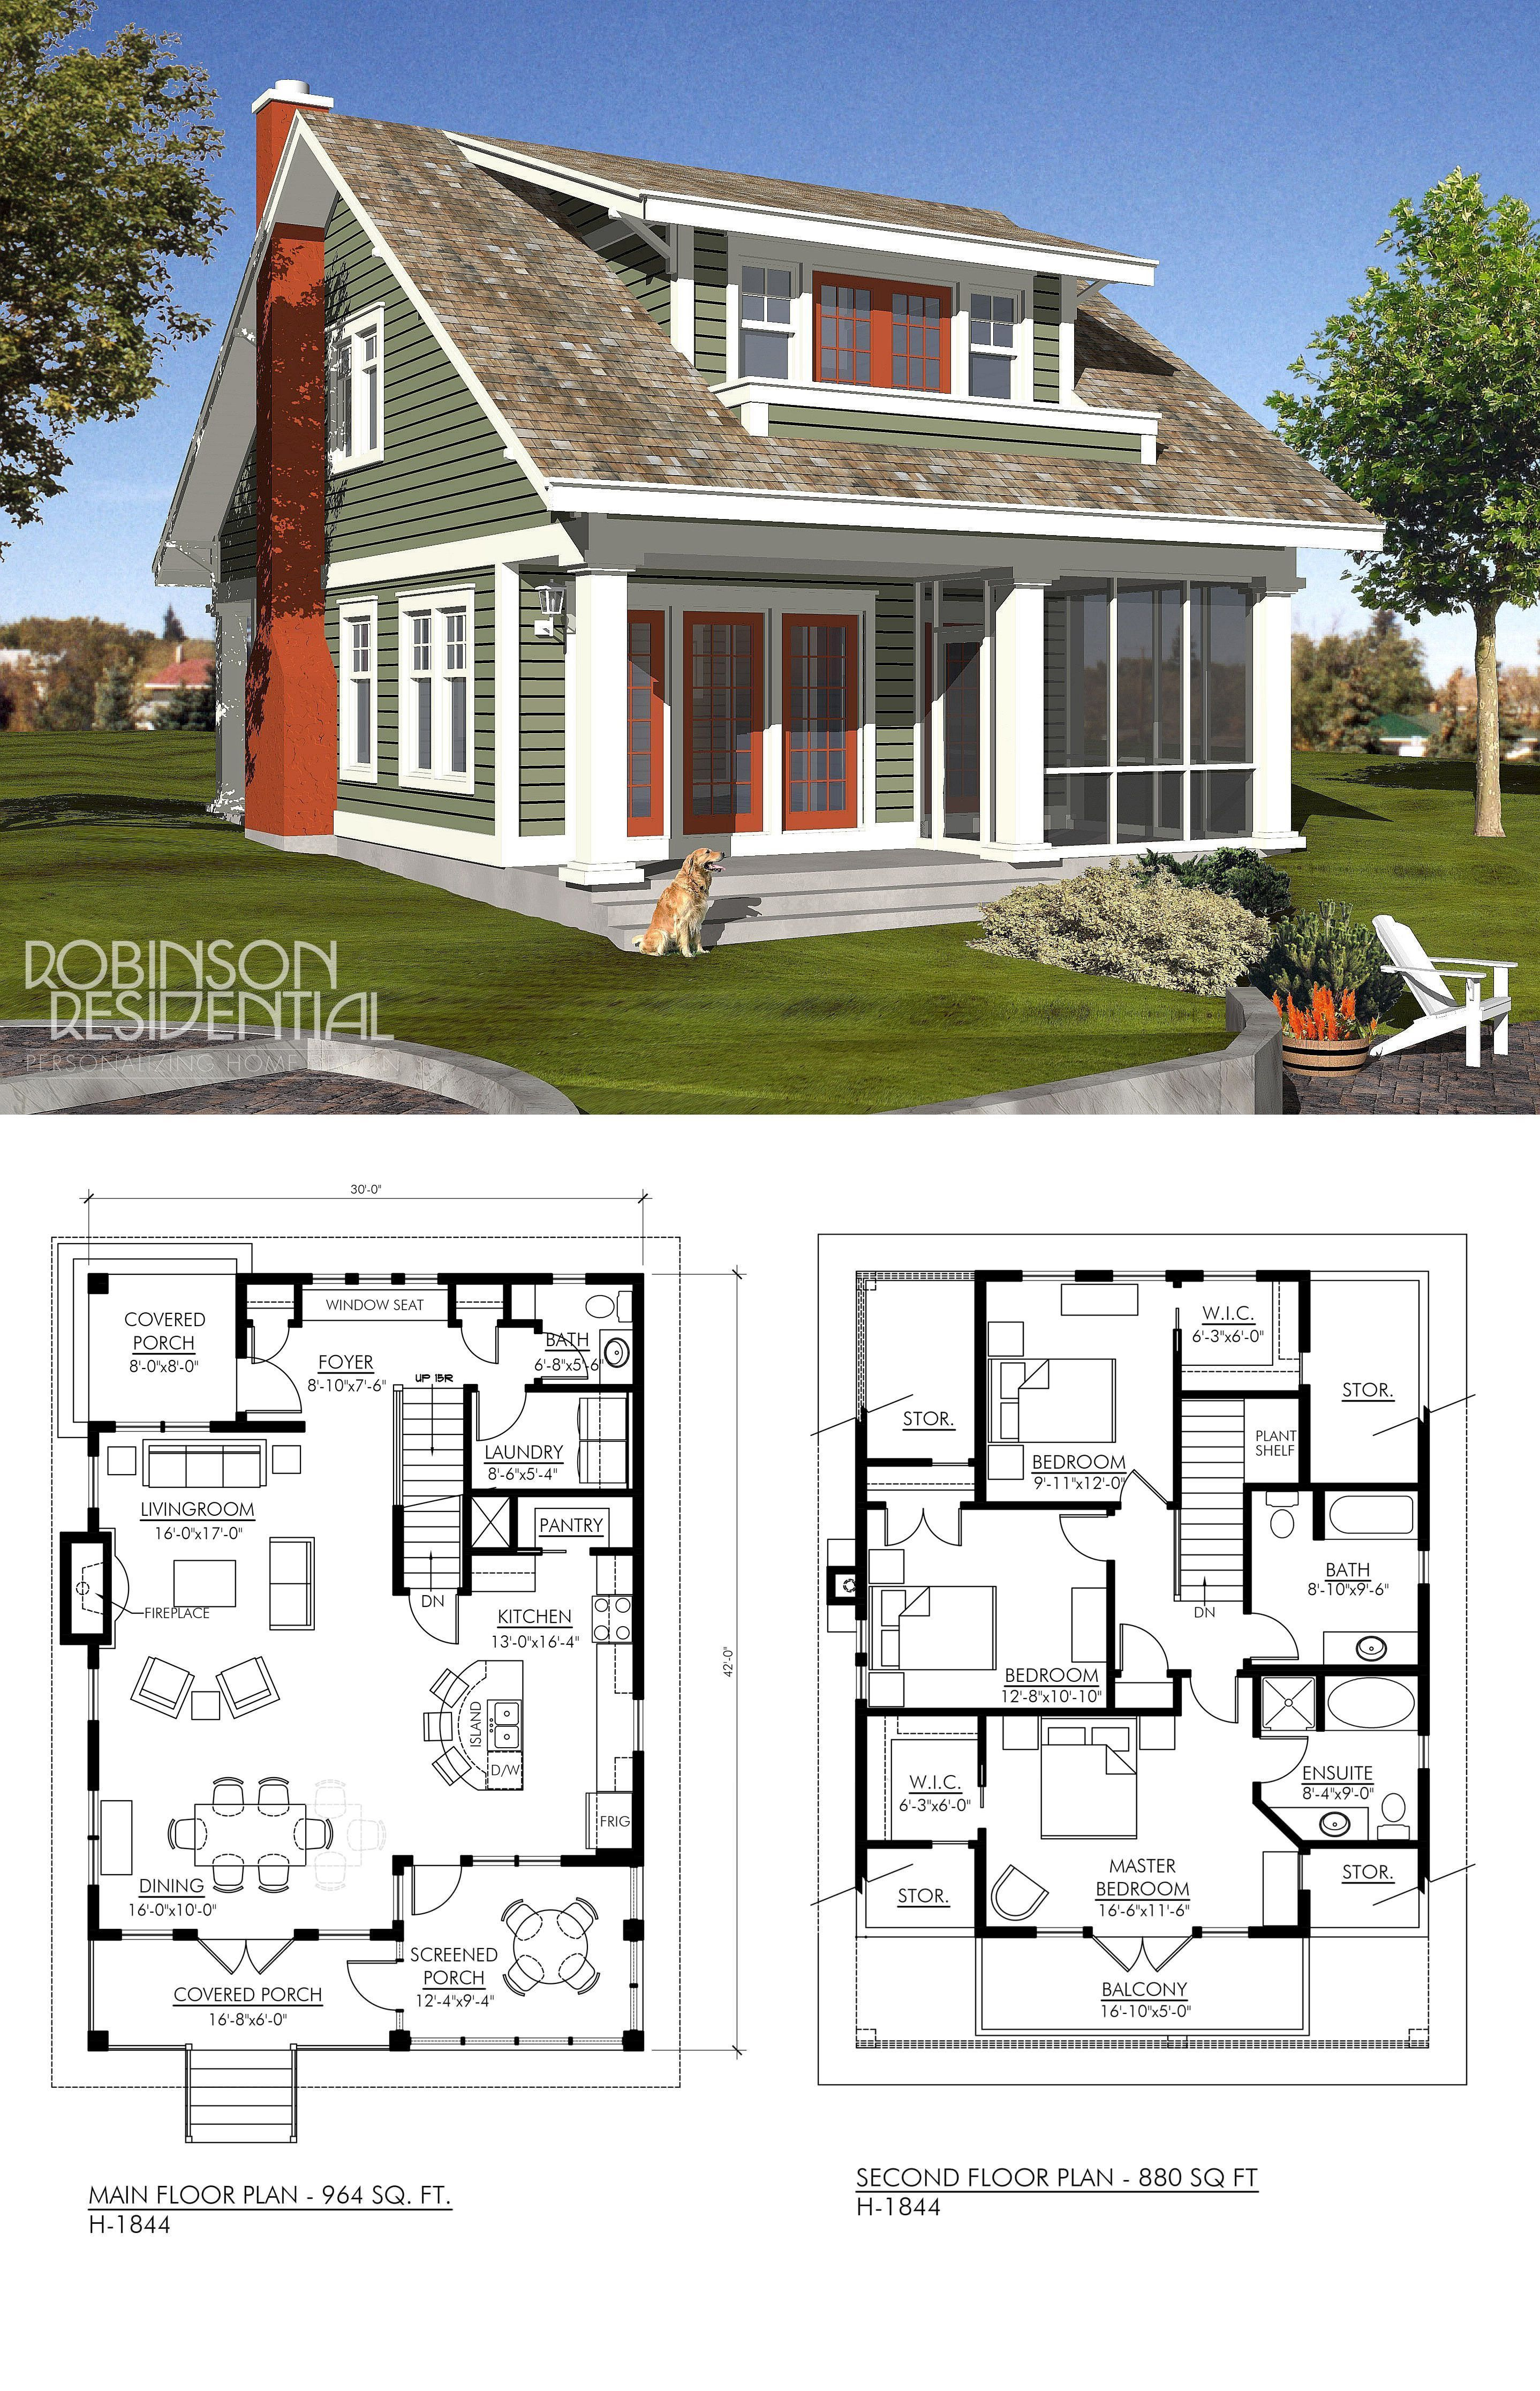 Lake House Decorating Ideas 81 in 2019 | Lake house plans, House ...